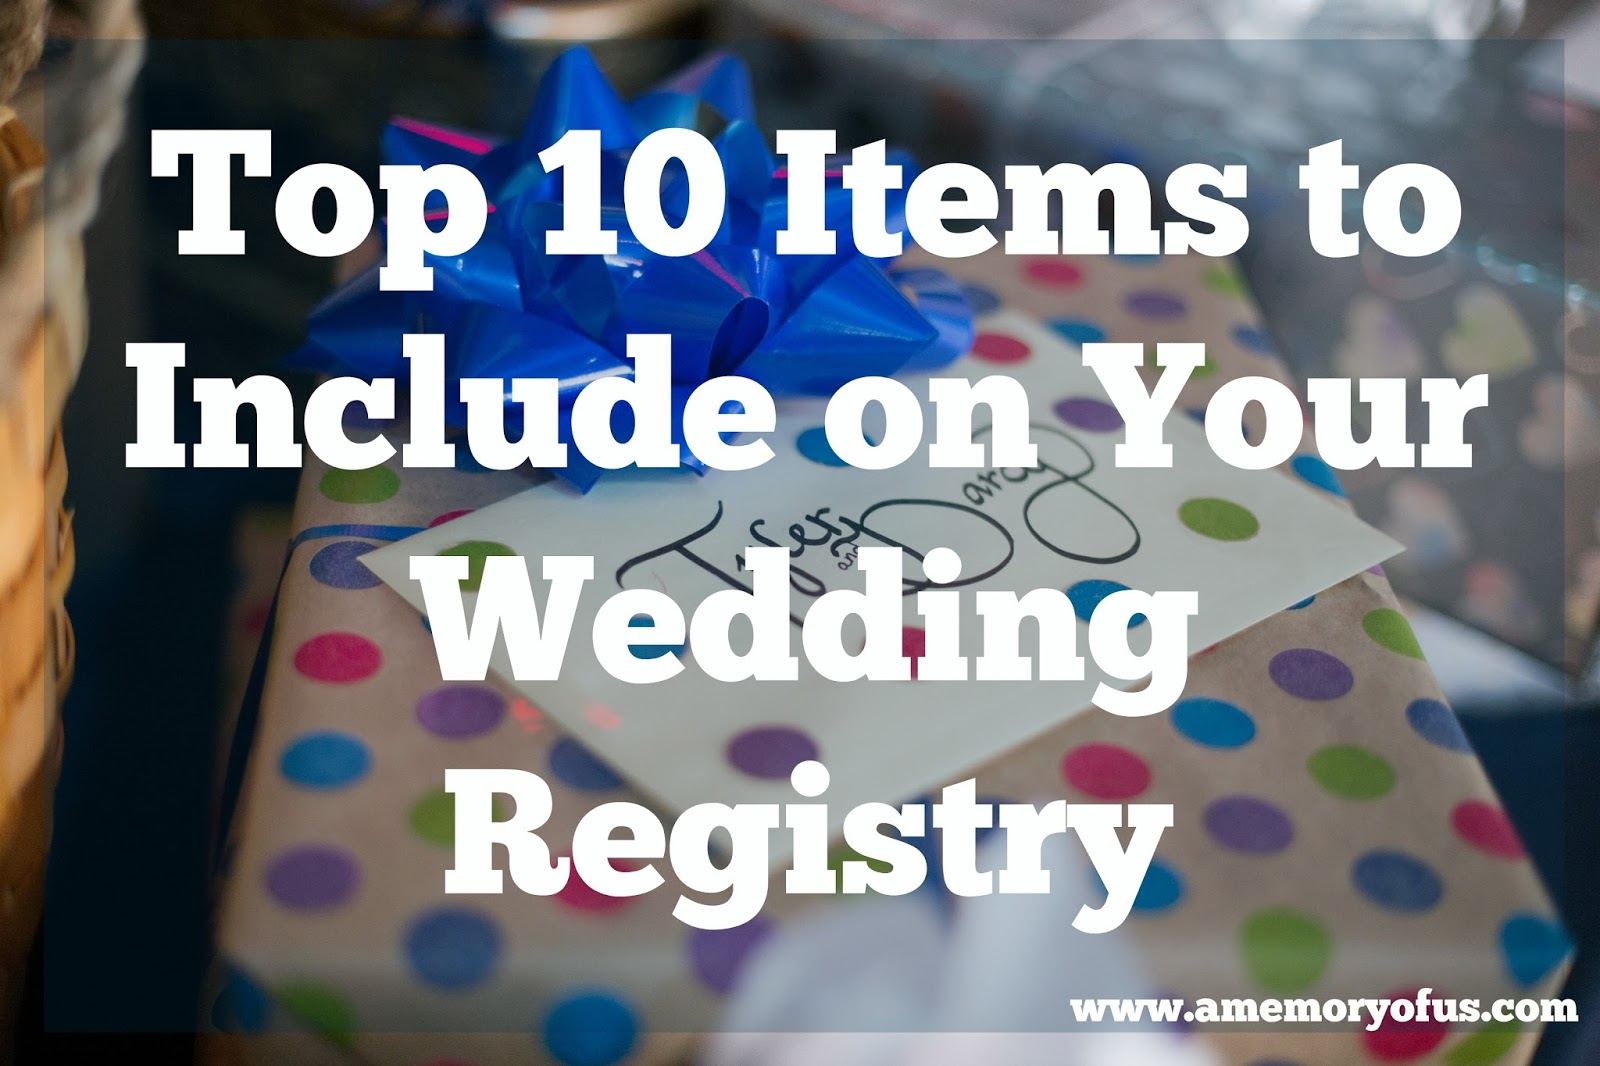 top 10 items to include on your wedding registry | a memory of us | tips for creating your wedding registry | what to include on your wedding registry